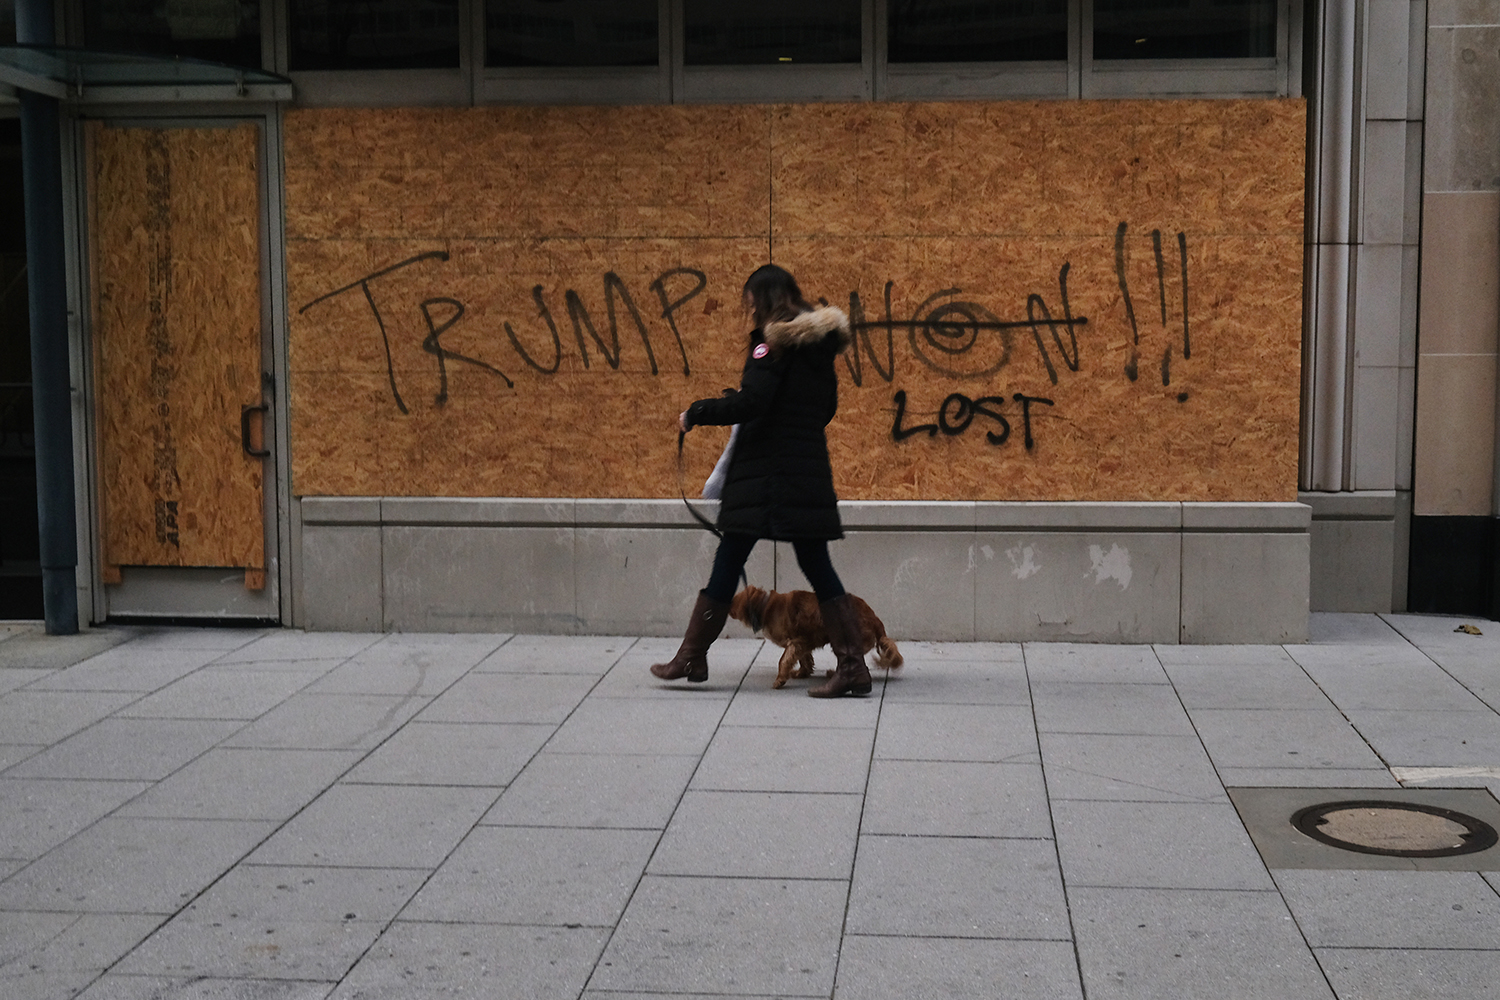 A person walks a dog past a boarded-up business in Washington on Jan. 16.